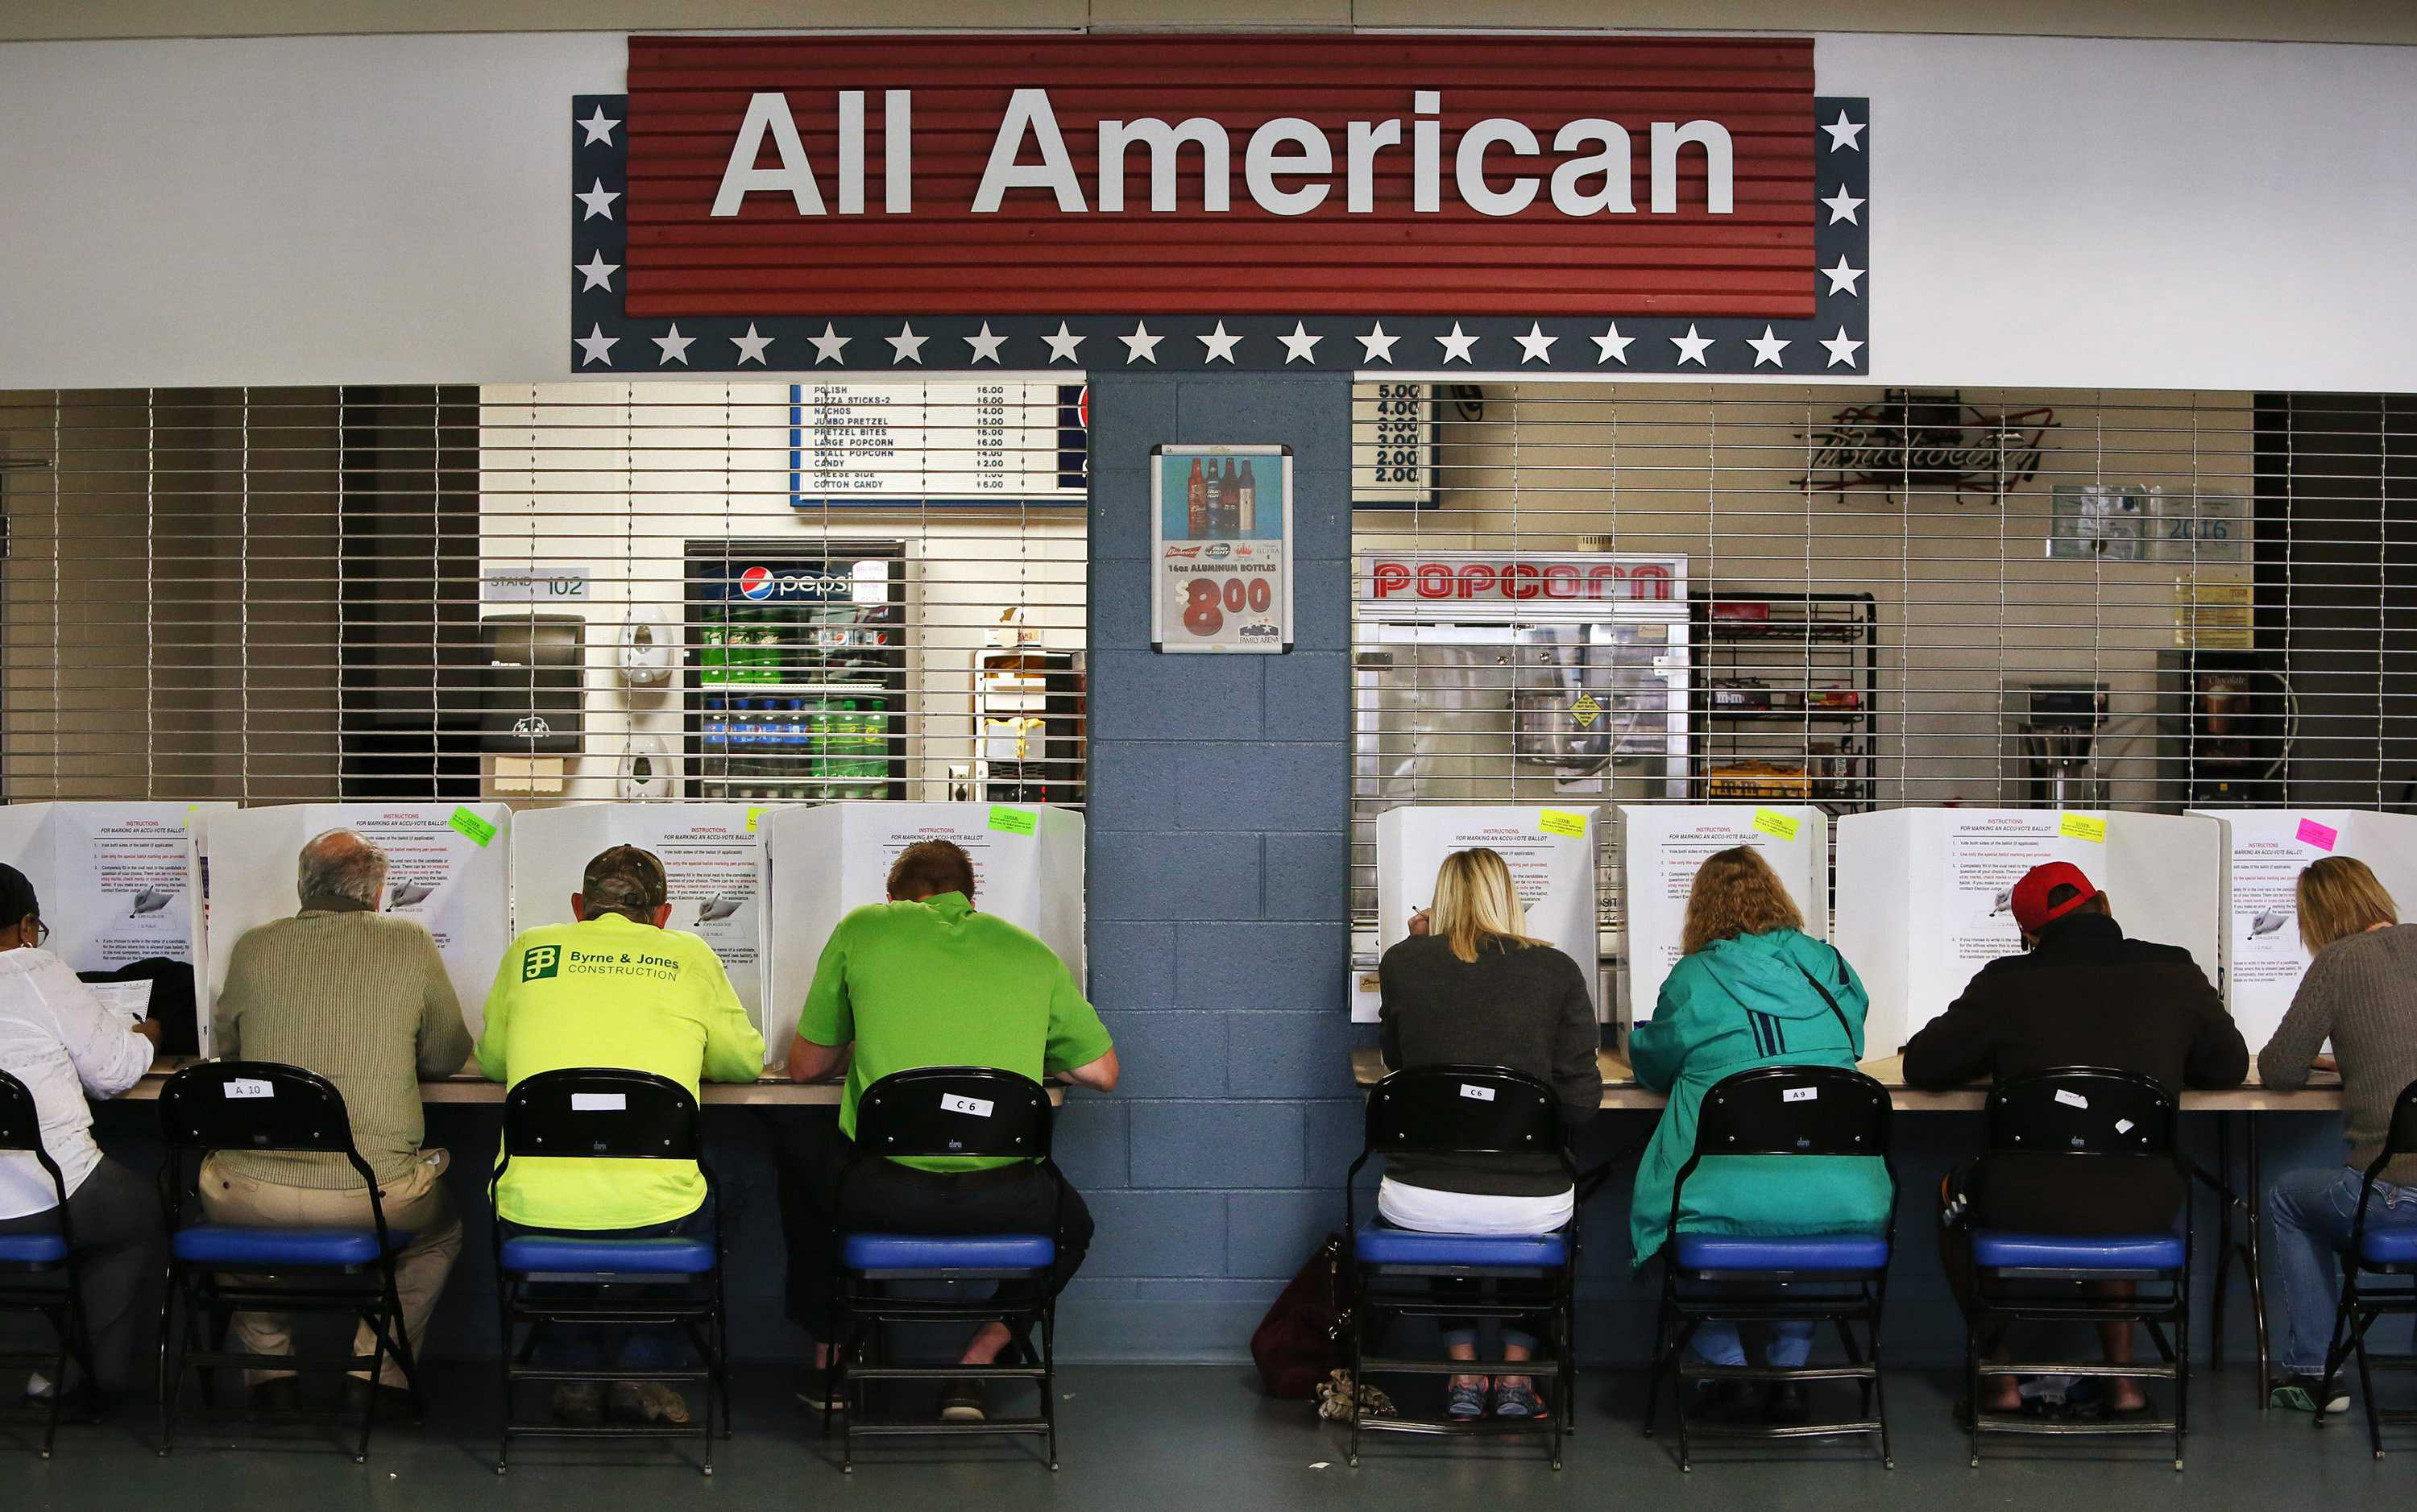 Voters fill out their ballots on Tuesday, Nov. 8, 2016 by a concession stand at the Precinct 16 polling station at the Family Arena in St. Charles, Mo.  (Chris Lee/St. Louis Post-Dispatch/TNS)